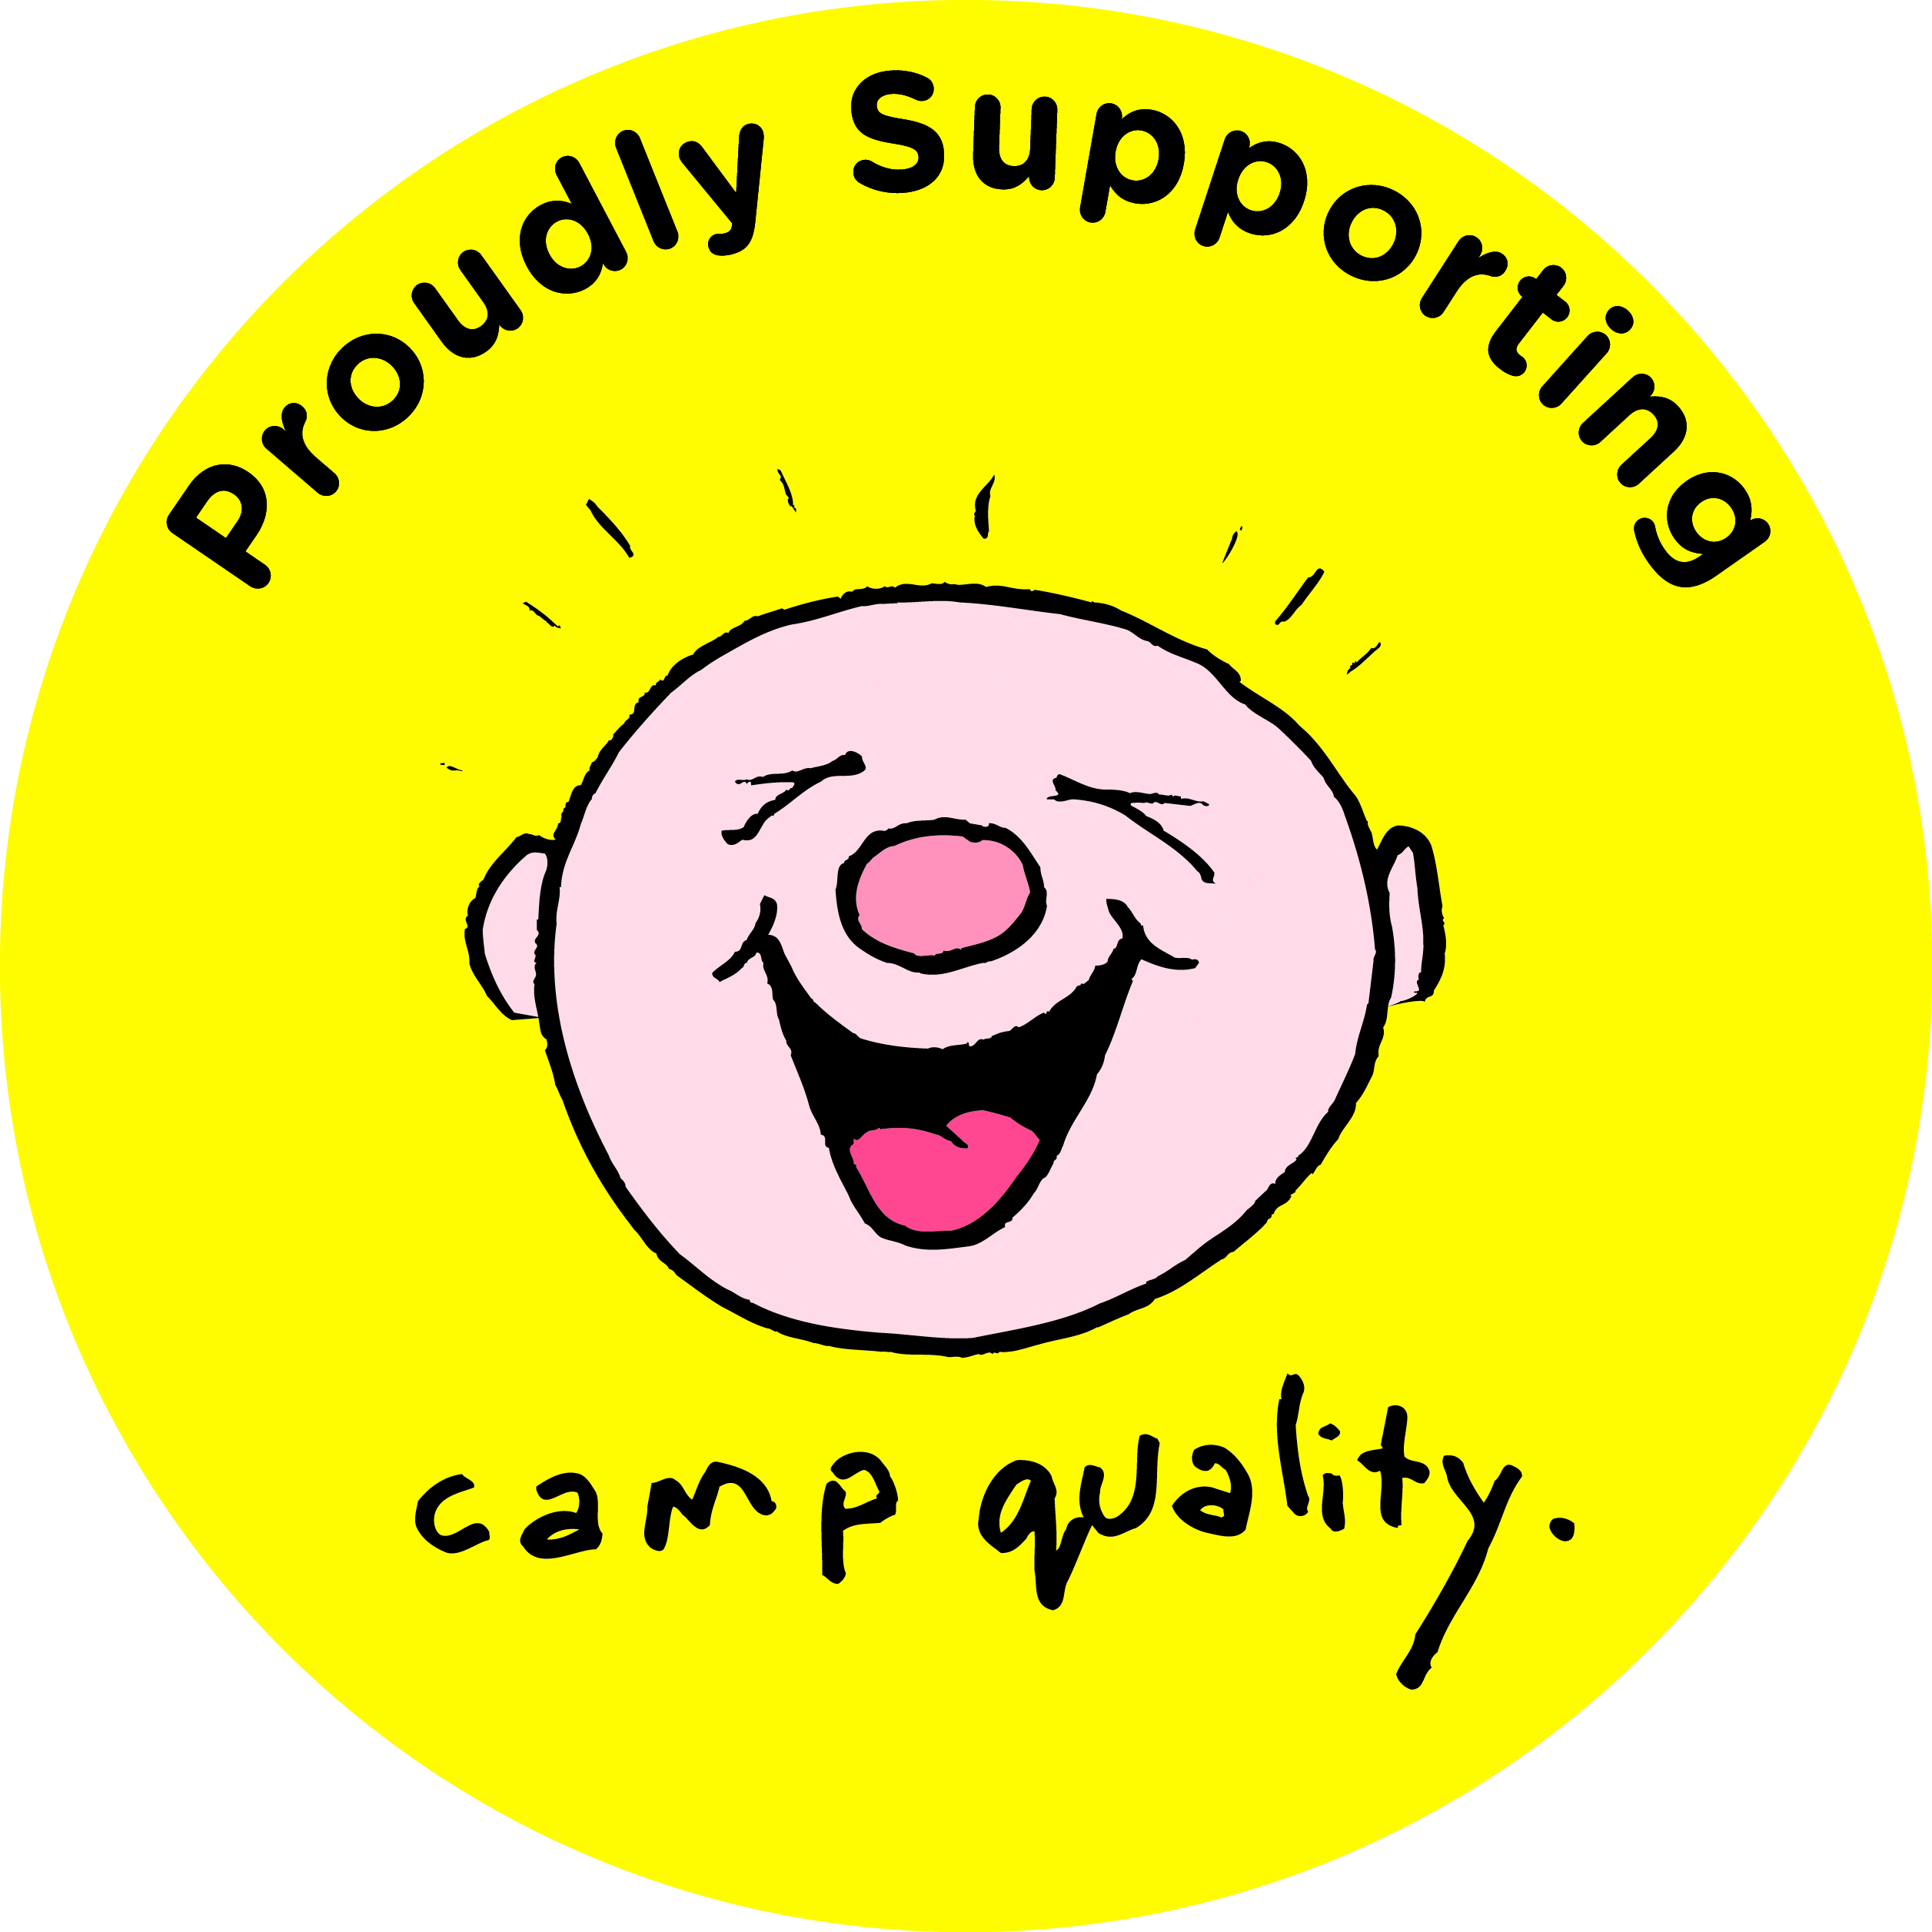 Proudly Supporting Camp Quality